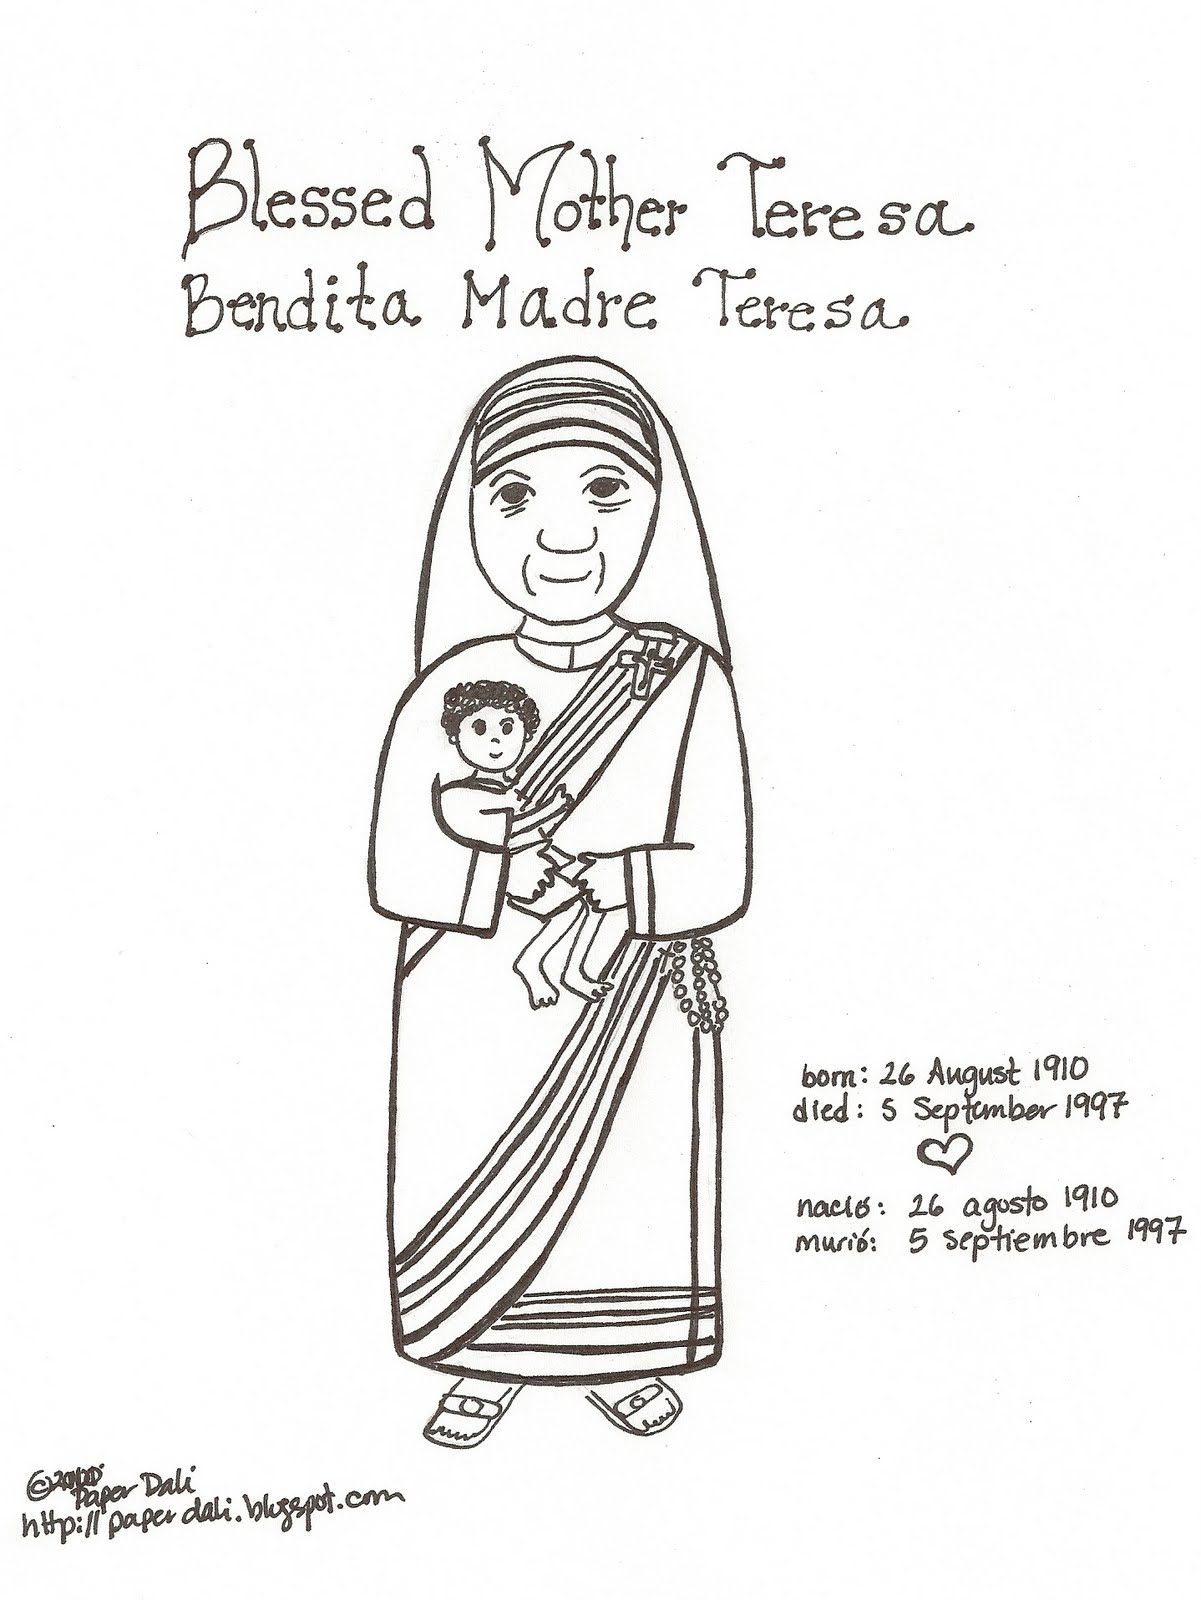 blessed mother teresa of calcutta bendita madre teresa